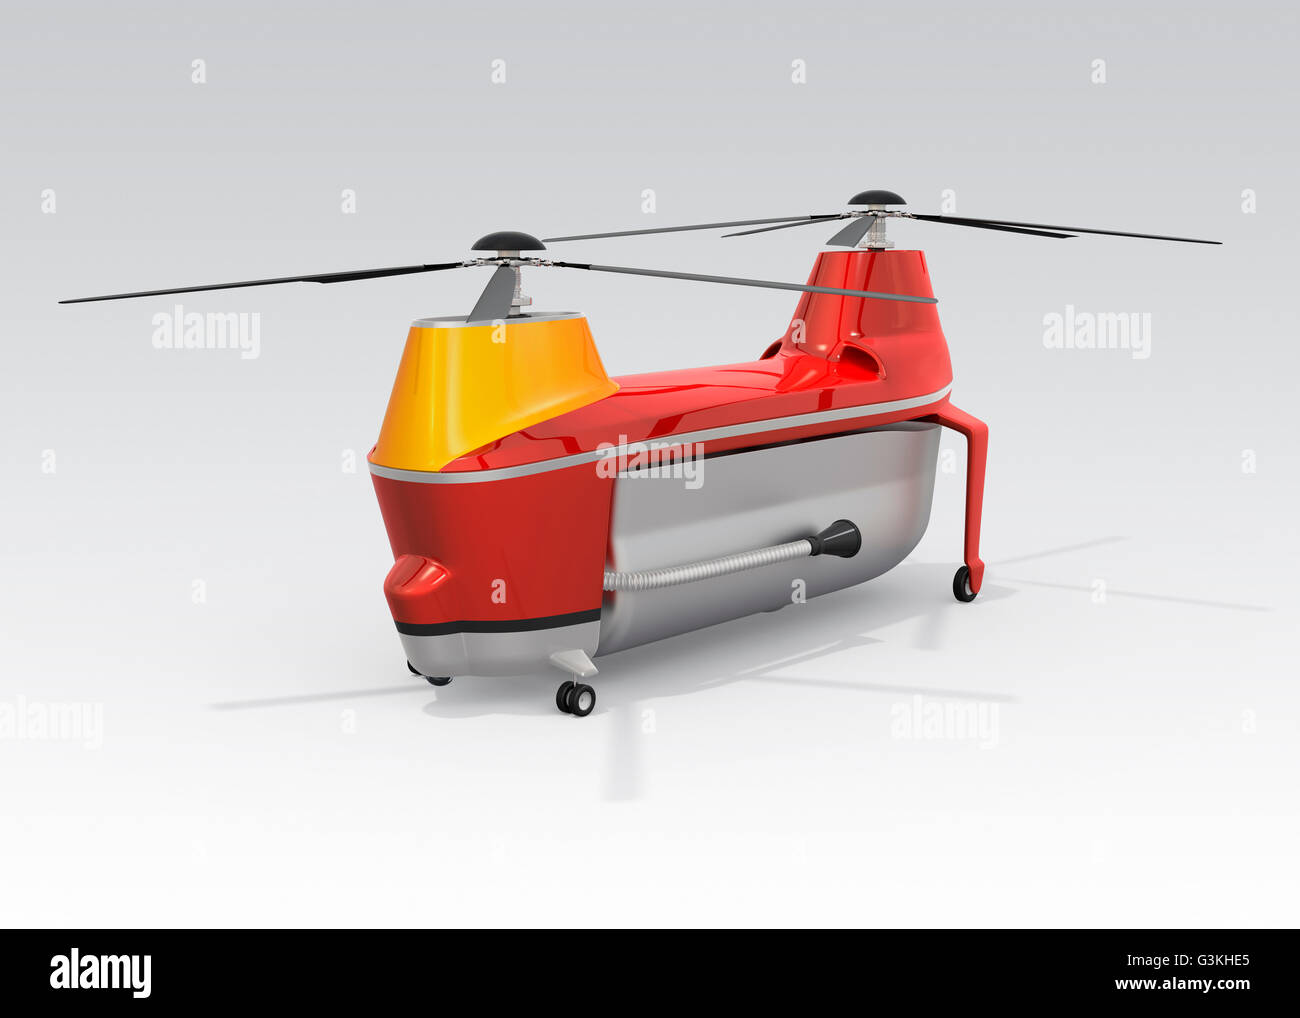 wireless remote control helicopter with Stock Photo Fire Fighting Drone On The Ground 3d Rendering Image 105536989 on Stock Illustration Swarm Security Drones Surveillance Camera Flying Sky D Rendering Image Image84285876 likewise Stock Illustration Side View Drone Vector Illustration Image50270363 moreover Stock Illustration Set Icons Quadrocopter Hexacopter Multicopter Drone Isolated White Image50393698 furthermore Stock Illustration Drone Missiles New Technology War Digital Artwork Fictional Vehicles Uav Theme Image53804479 additionally Drone Quadcopter Flying Sunset.